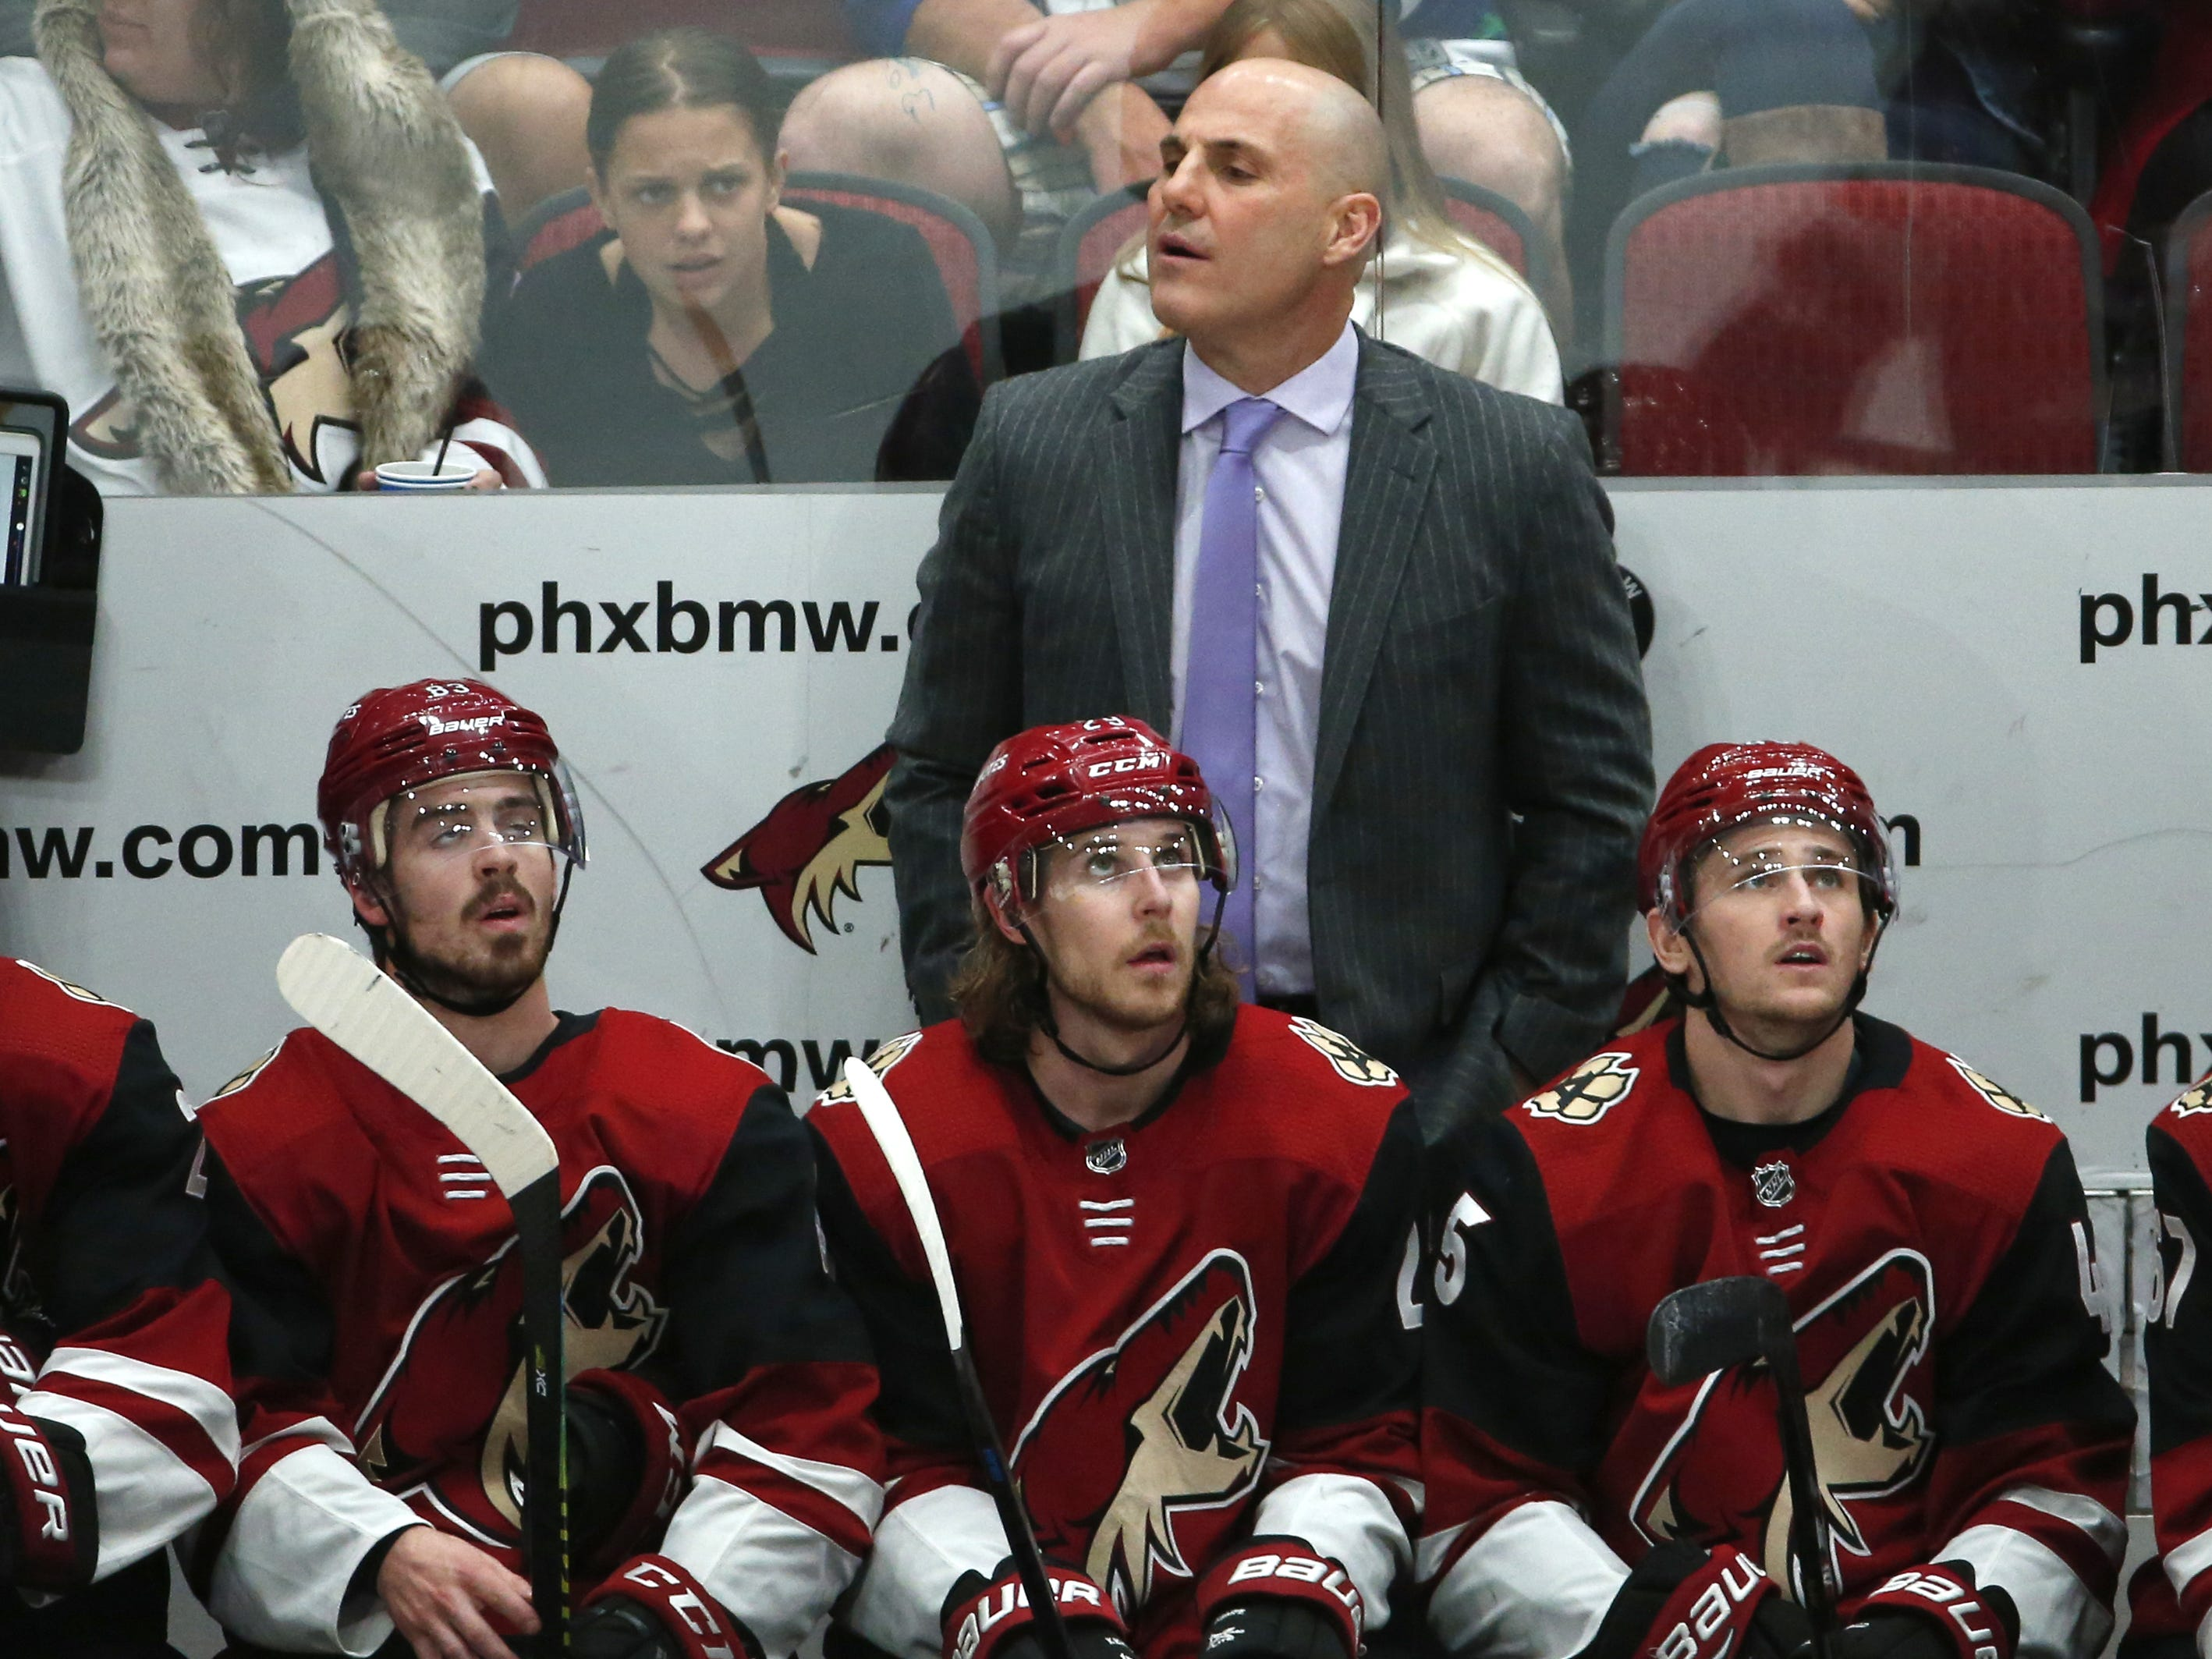 Arizona Coyotes head coach Rick Tocchet watches his team during a NHL game against the Vancouver Canucks at Gila River Arena in Glendale on February 28.